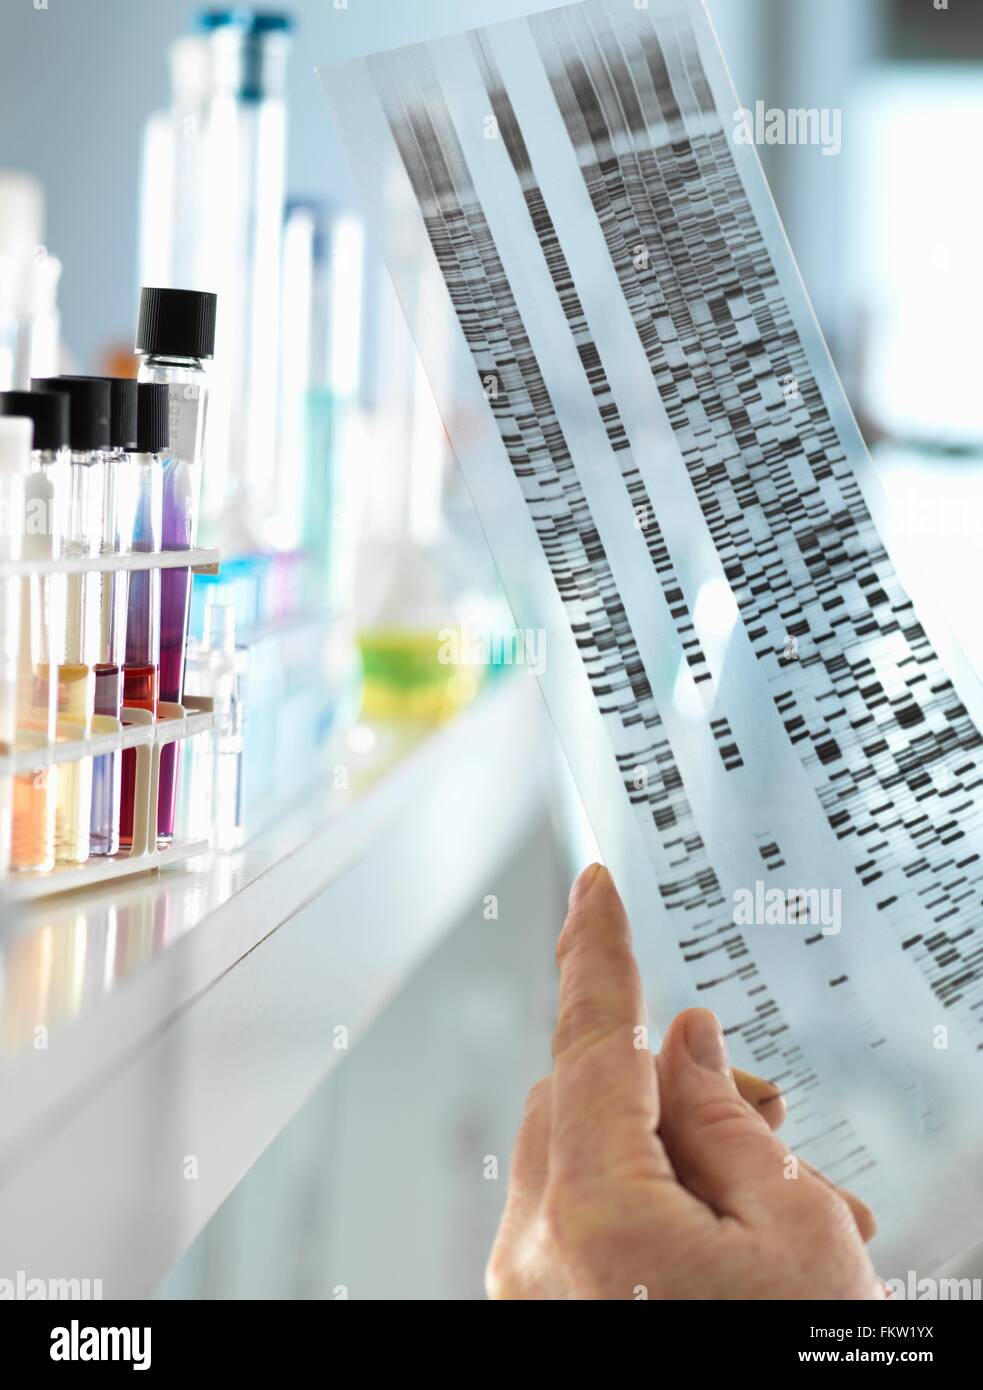 Scientist viewing a DNA sequence gel to understand the genetic information of a human in a laboratory - Stock Image